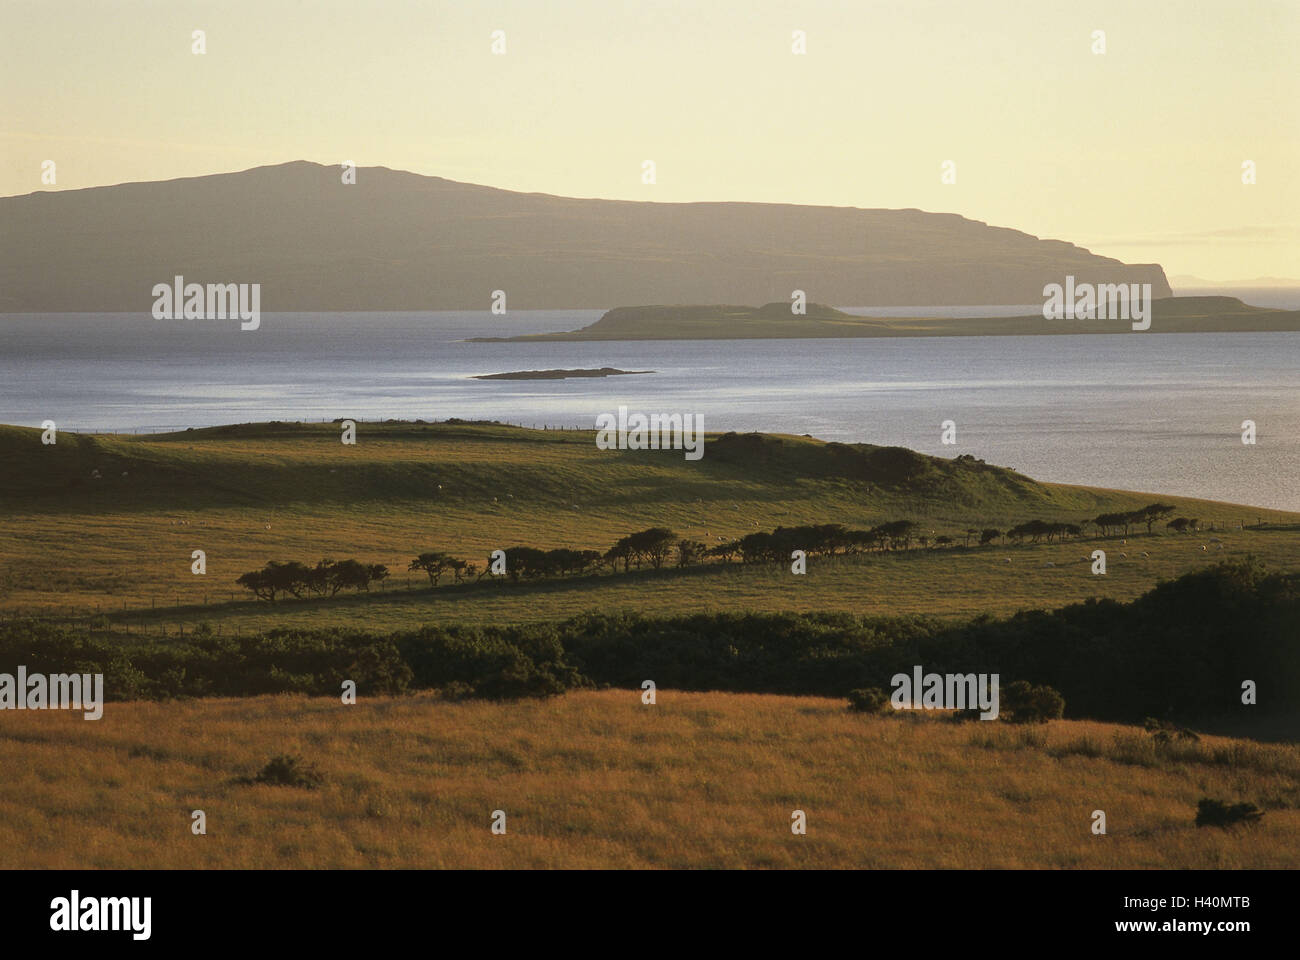 Great Britain, Scotland, island Skye, coast, pastureland, island, north island, island, scenery, morning mood, morning - Stock Image